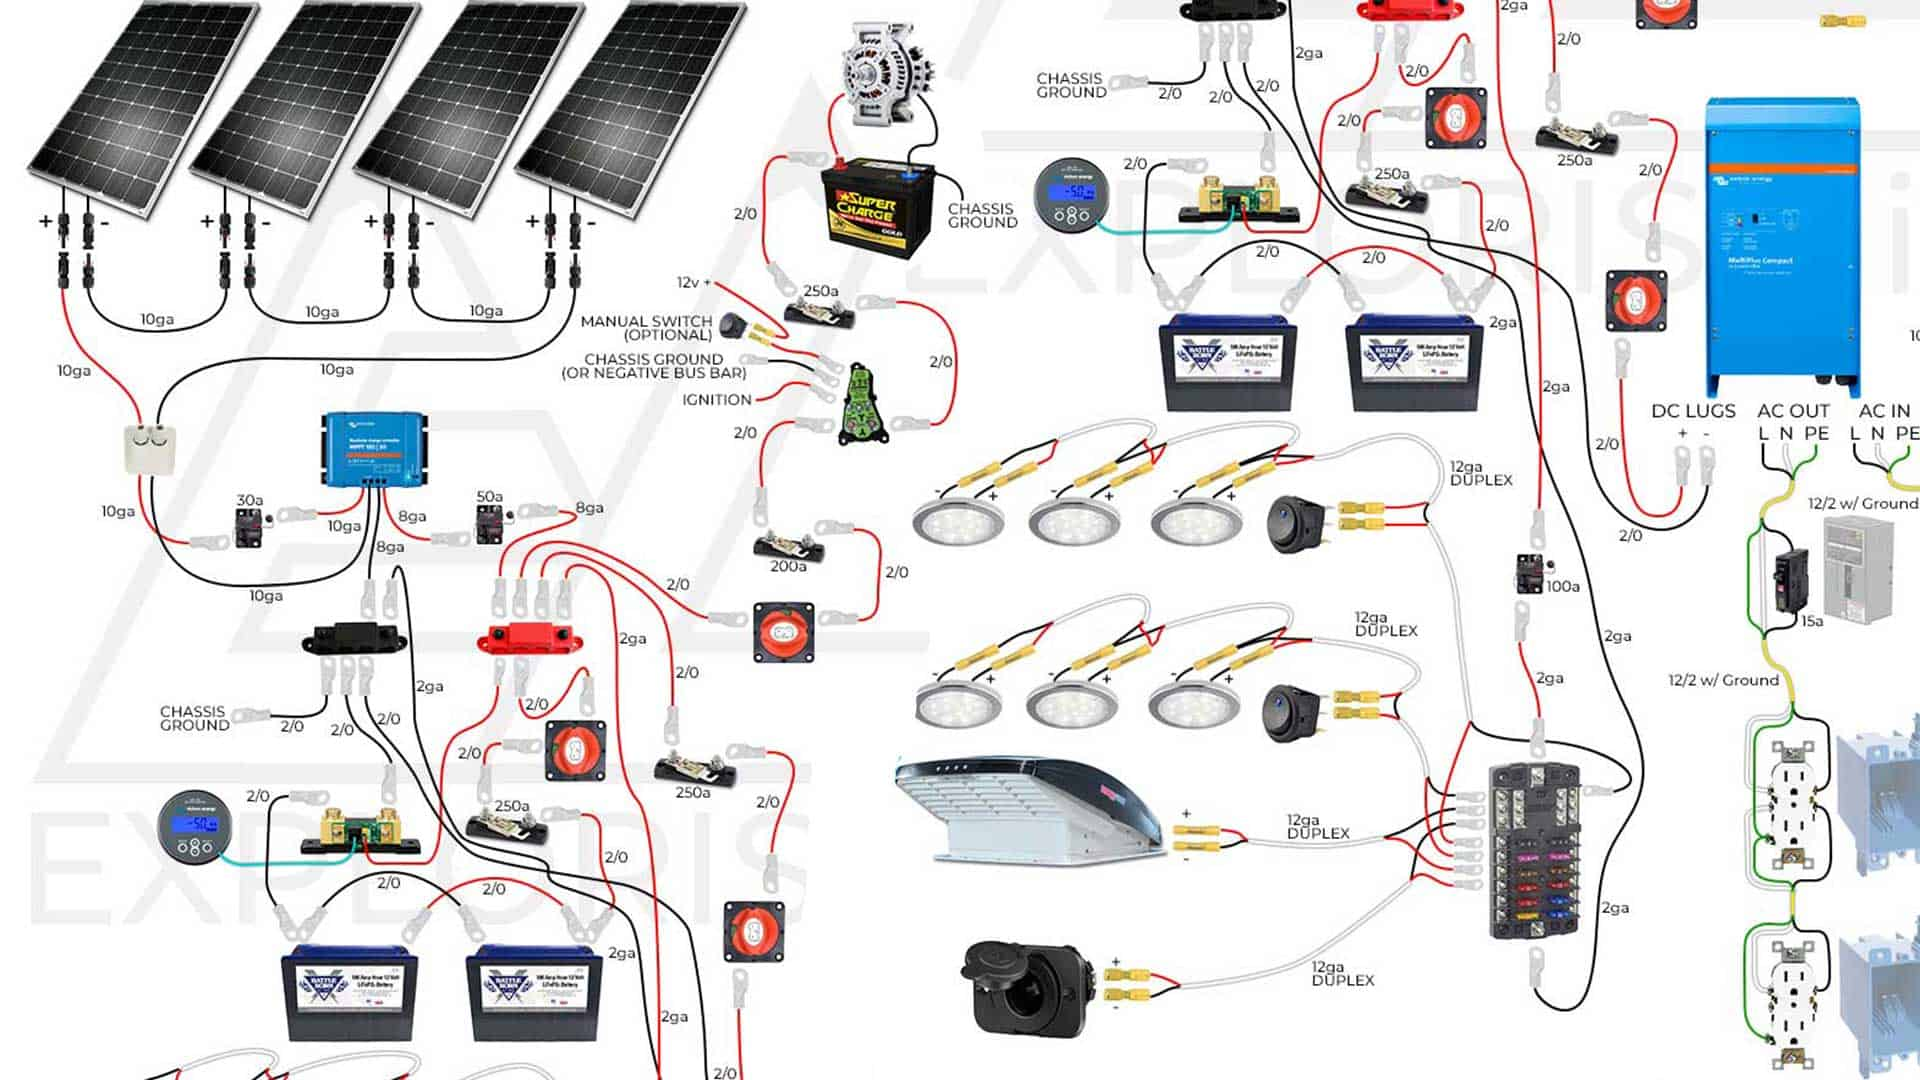 hight resolution of interactive diy solar wiring diagrams for campers van s rv s house wiring box diy solar wiring